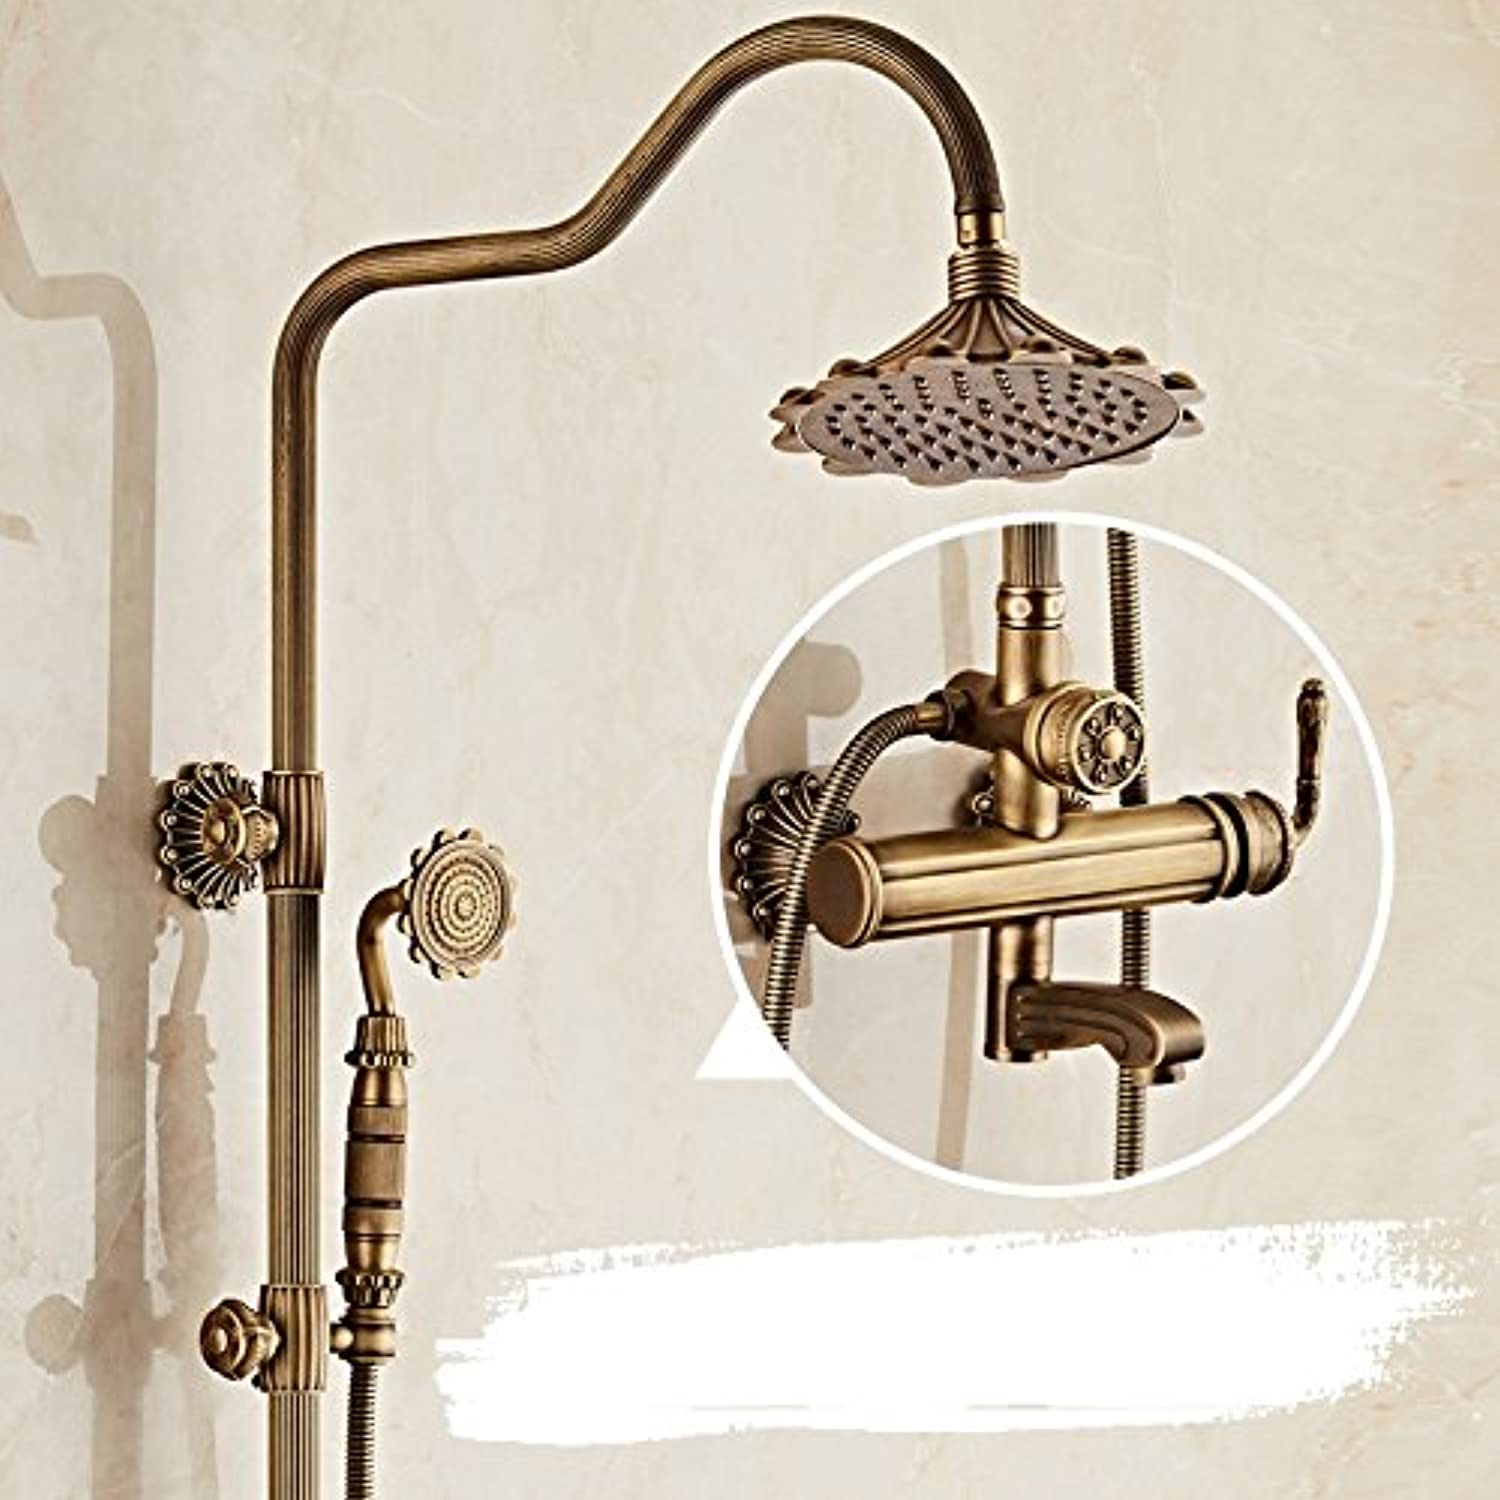 ZXY Copper antique copper shower shower set bathroom home shower shower head lift bathroom shower wall-mounted